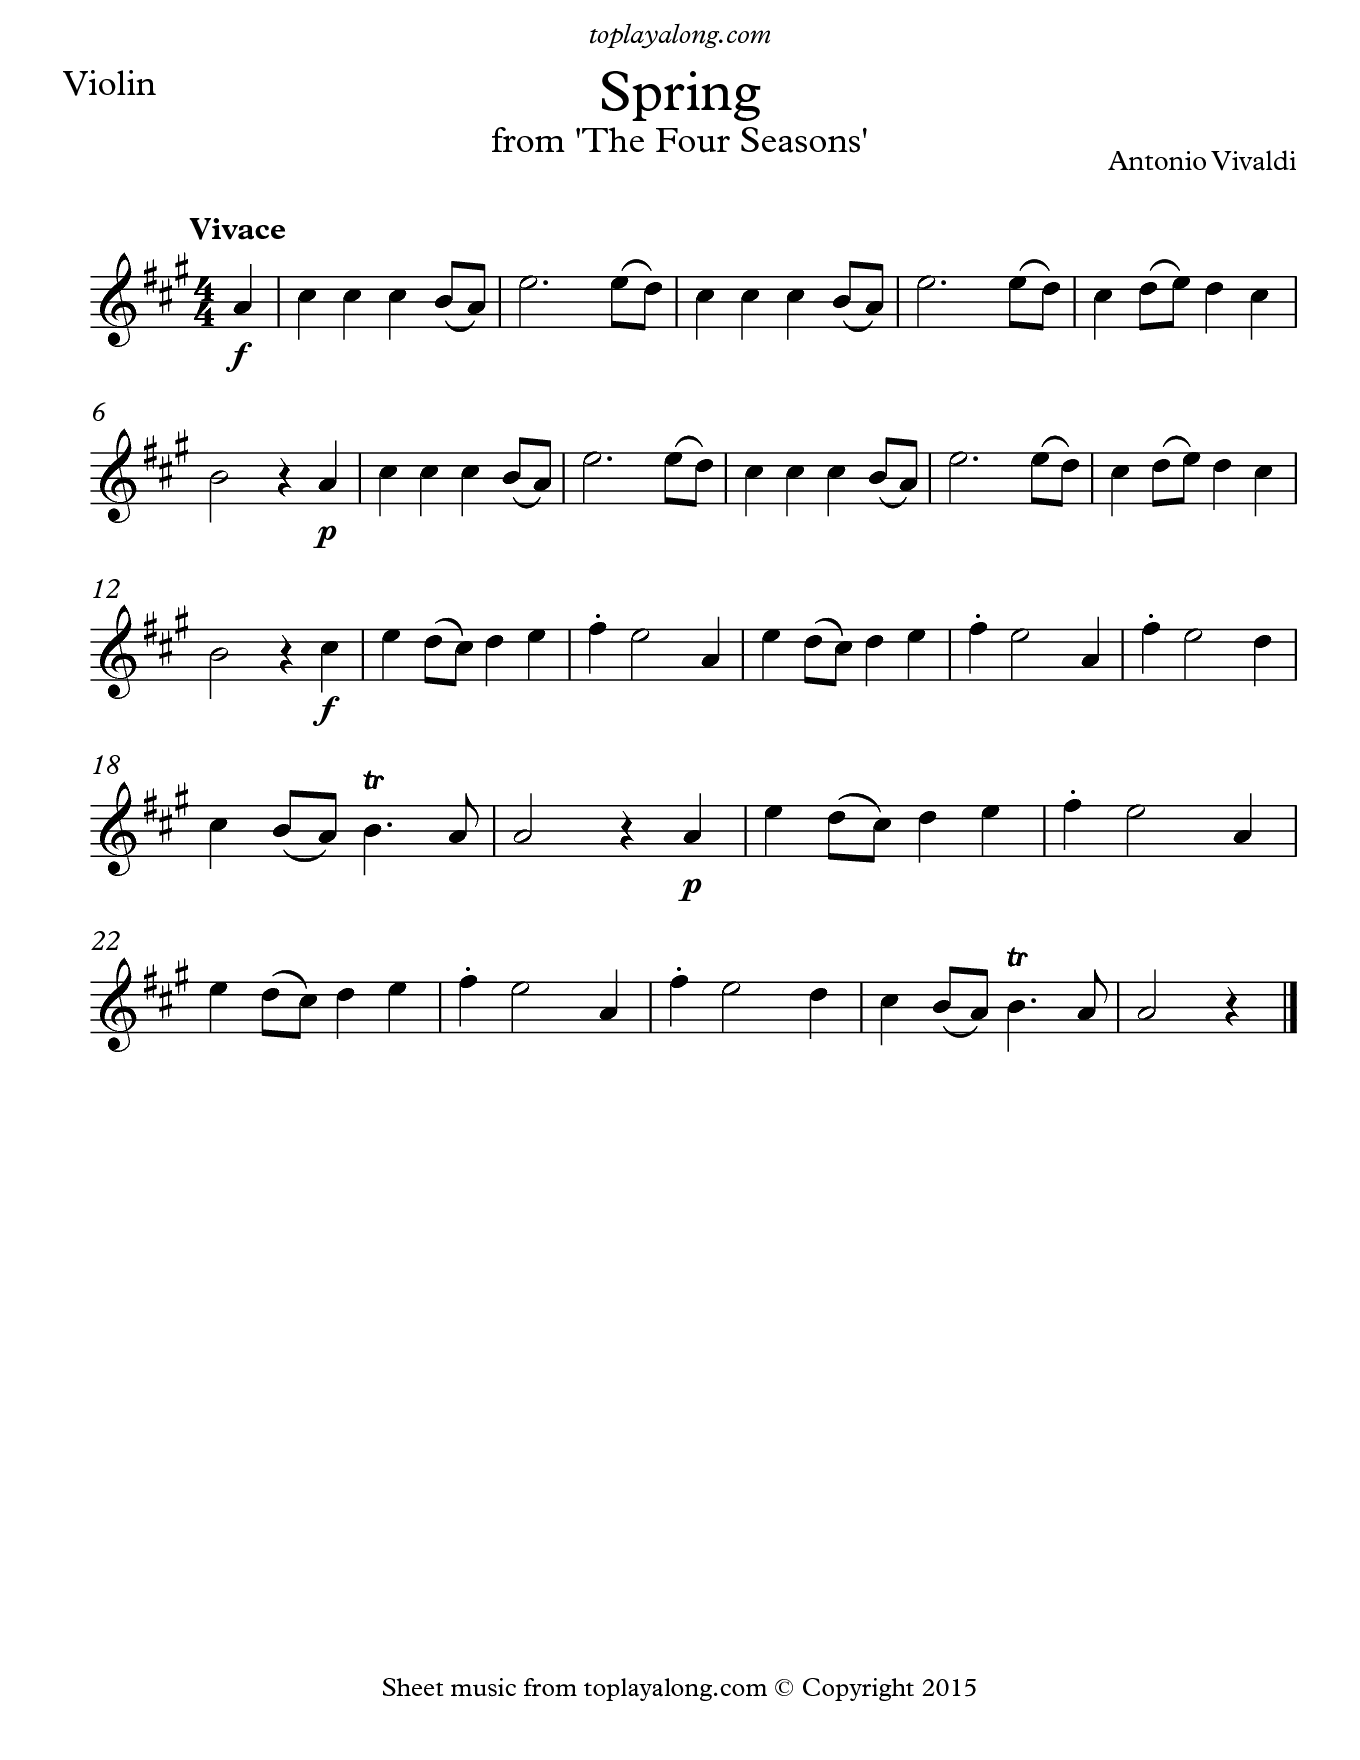 Spring from The Four Seasons by Vivaldi. Sheet music for Violin, page 1.